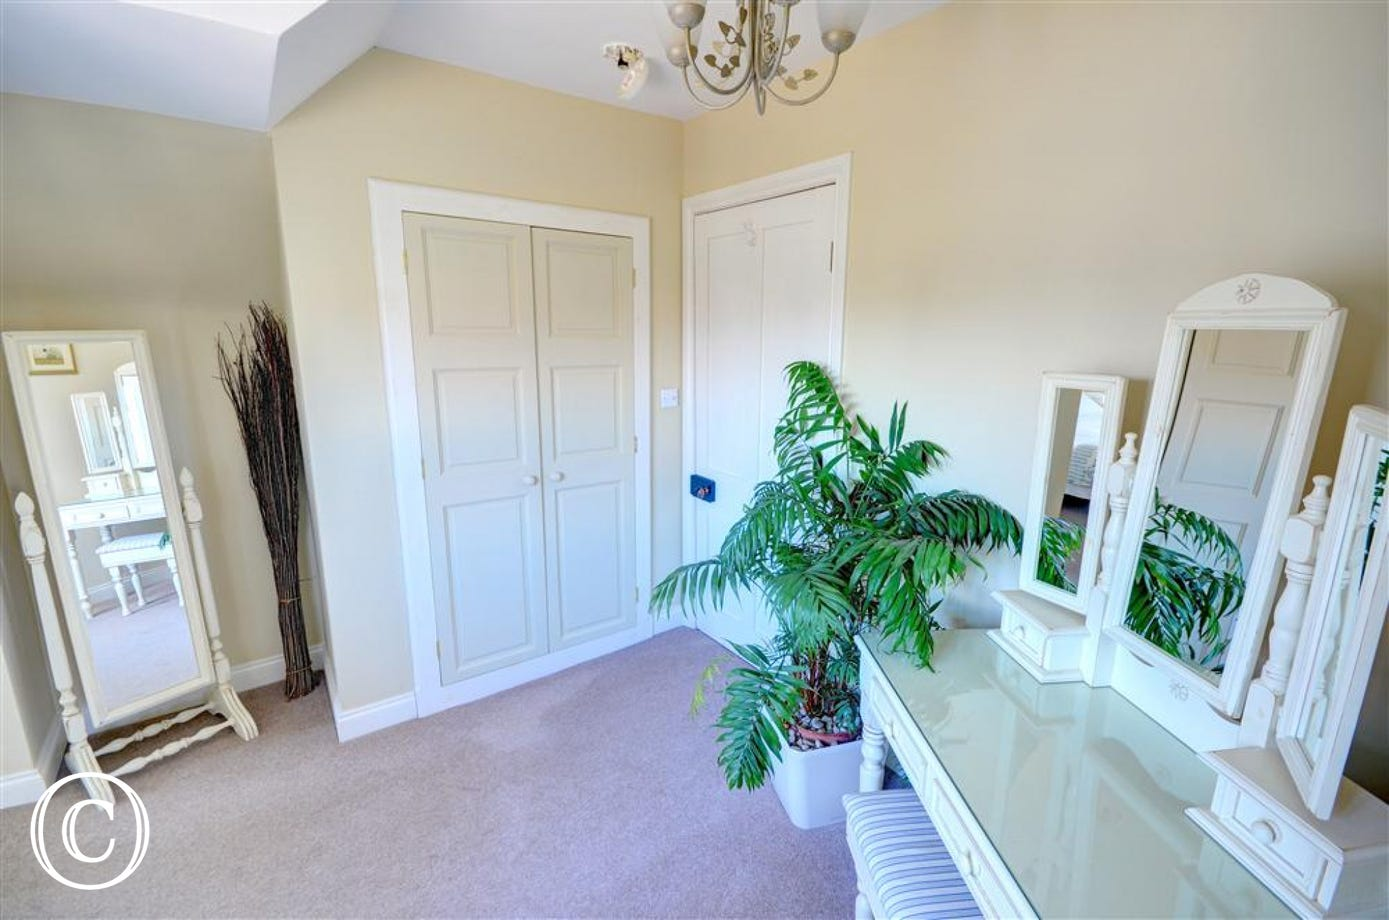 There is a spacious wardrobe, dressing table and a large mirror in the Dressing Room.